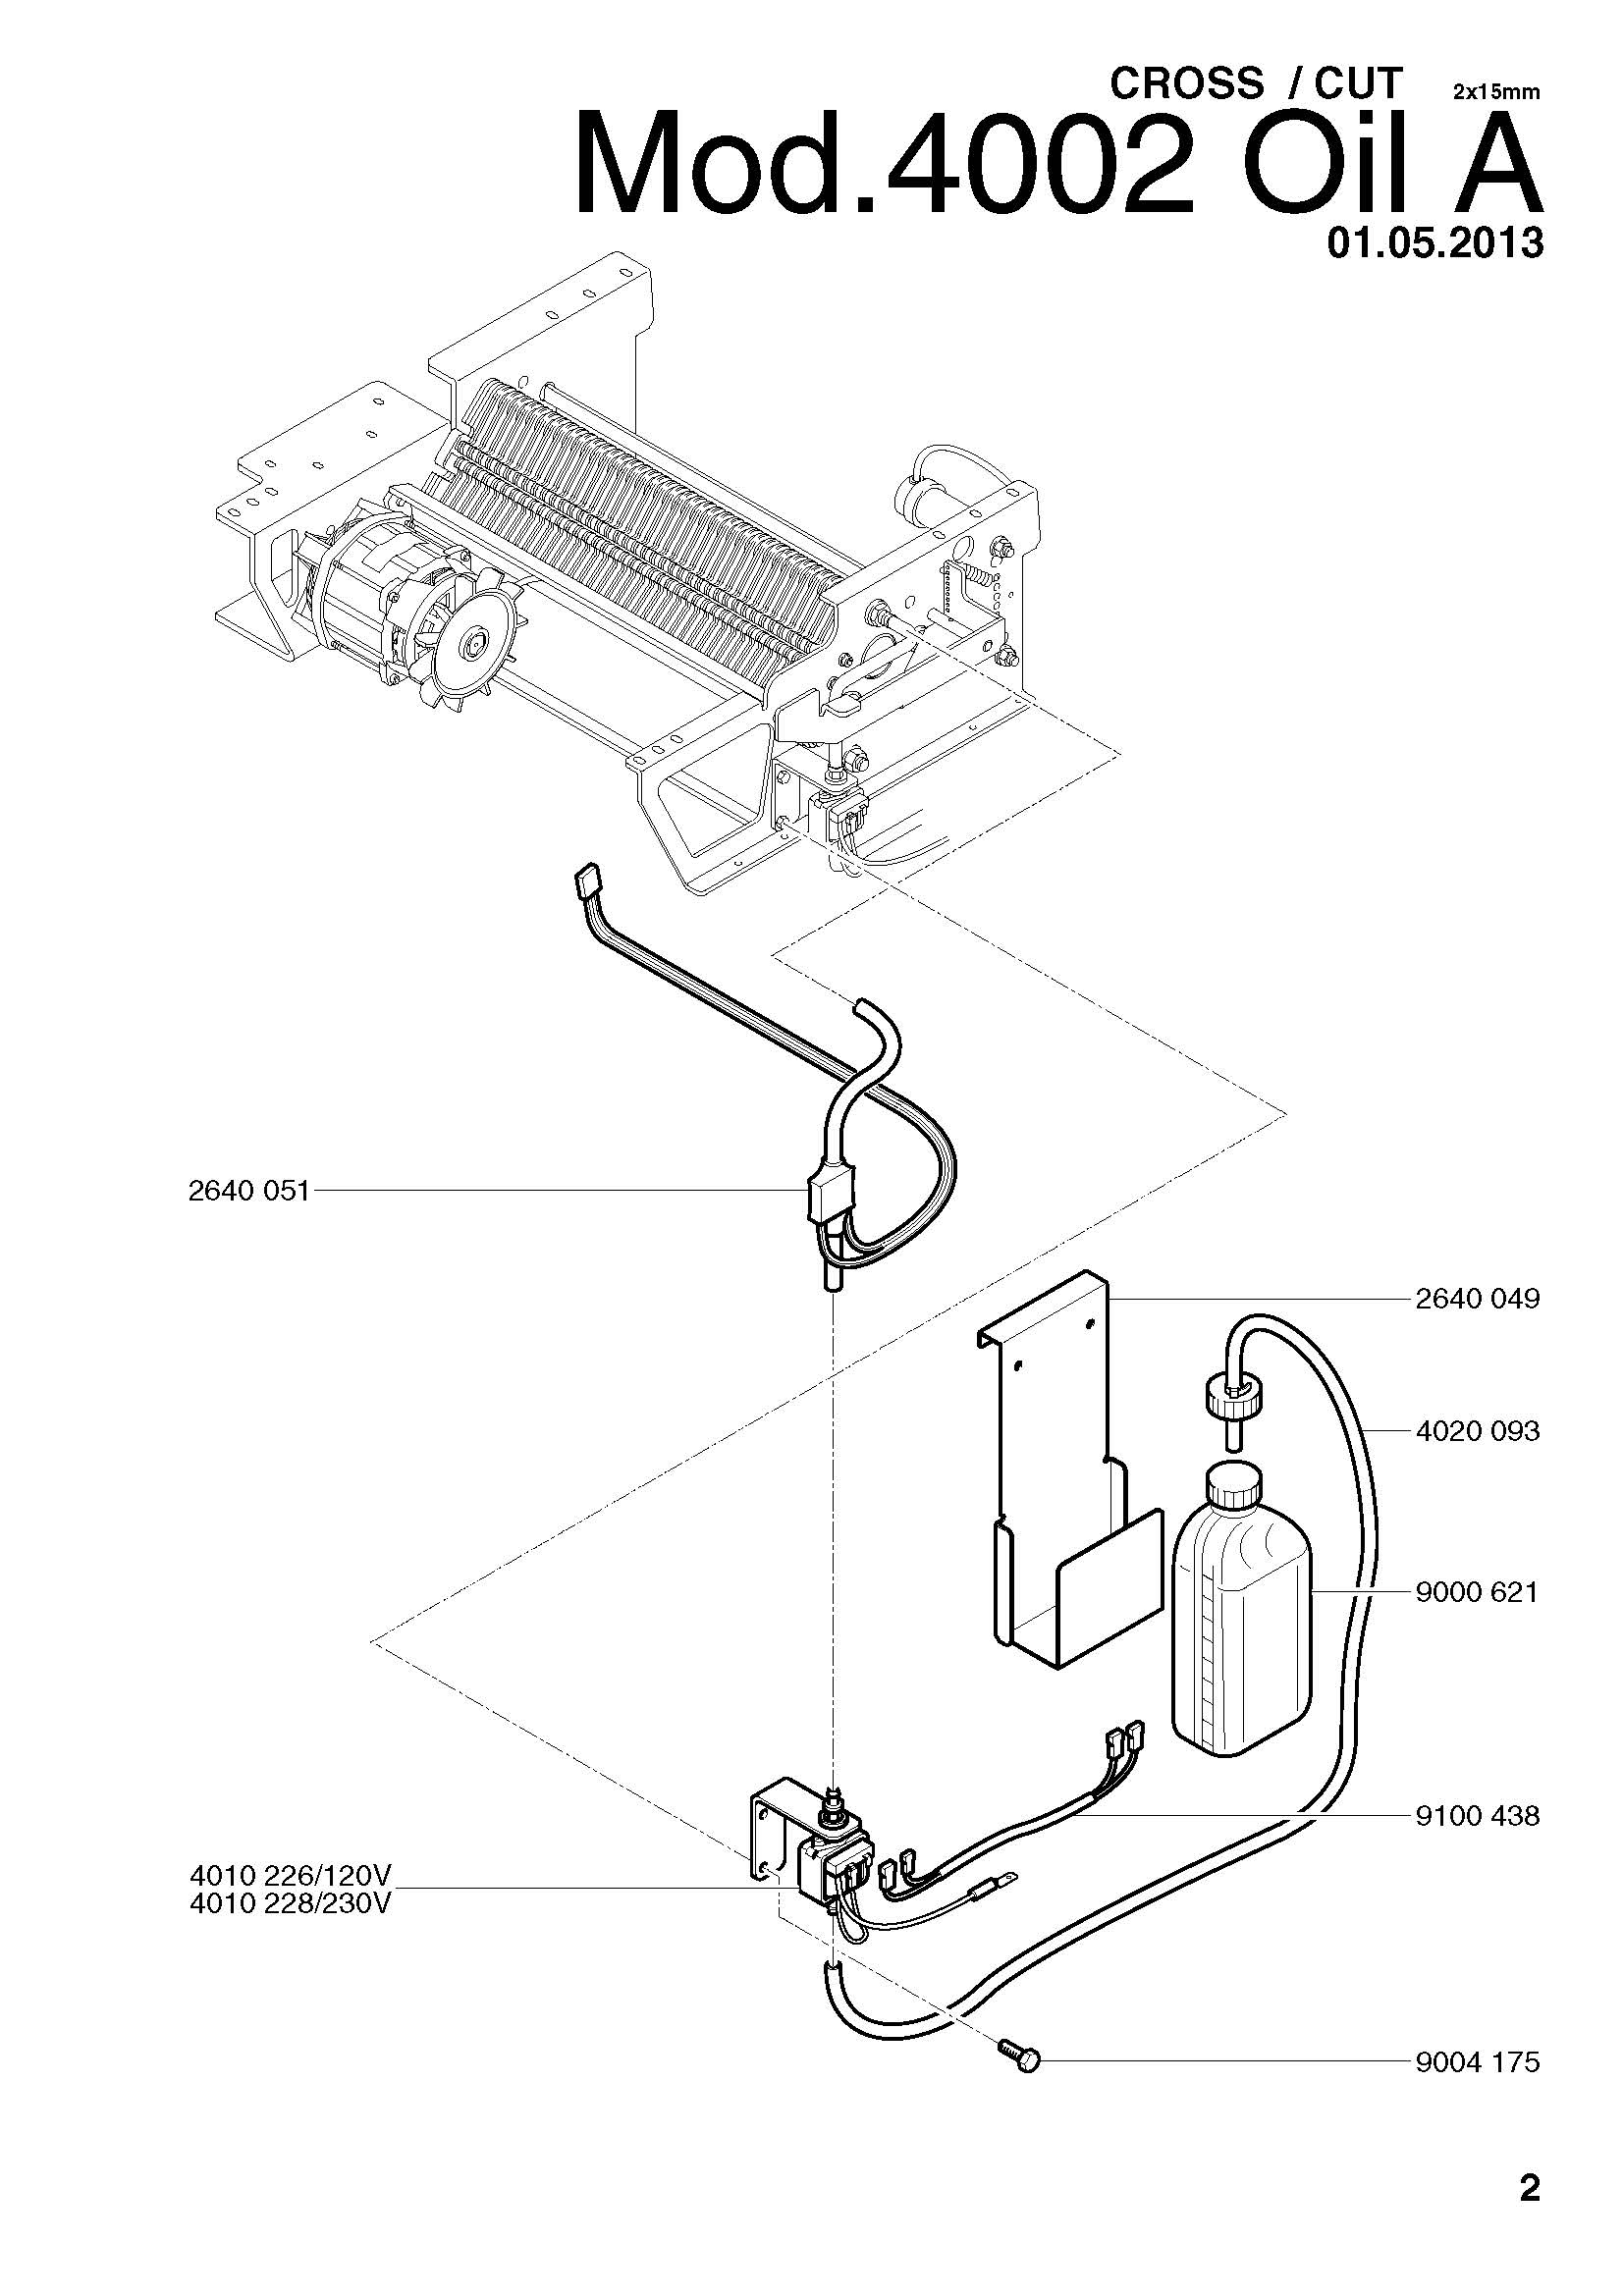 Paper Shredder Wiring Diagram Auto Electrical Wonderful Schematic Images